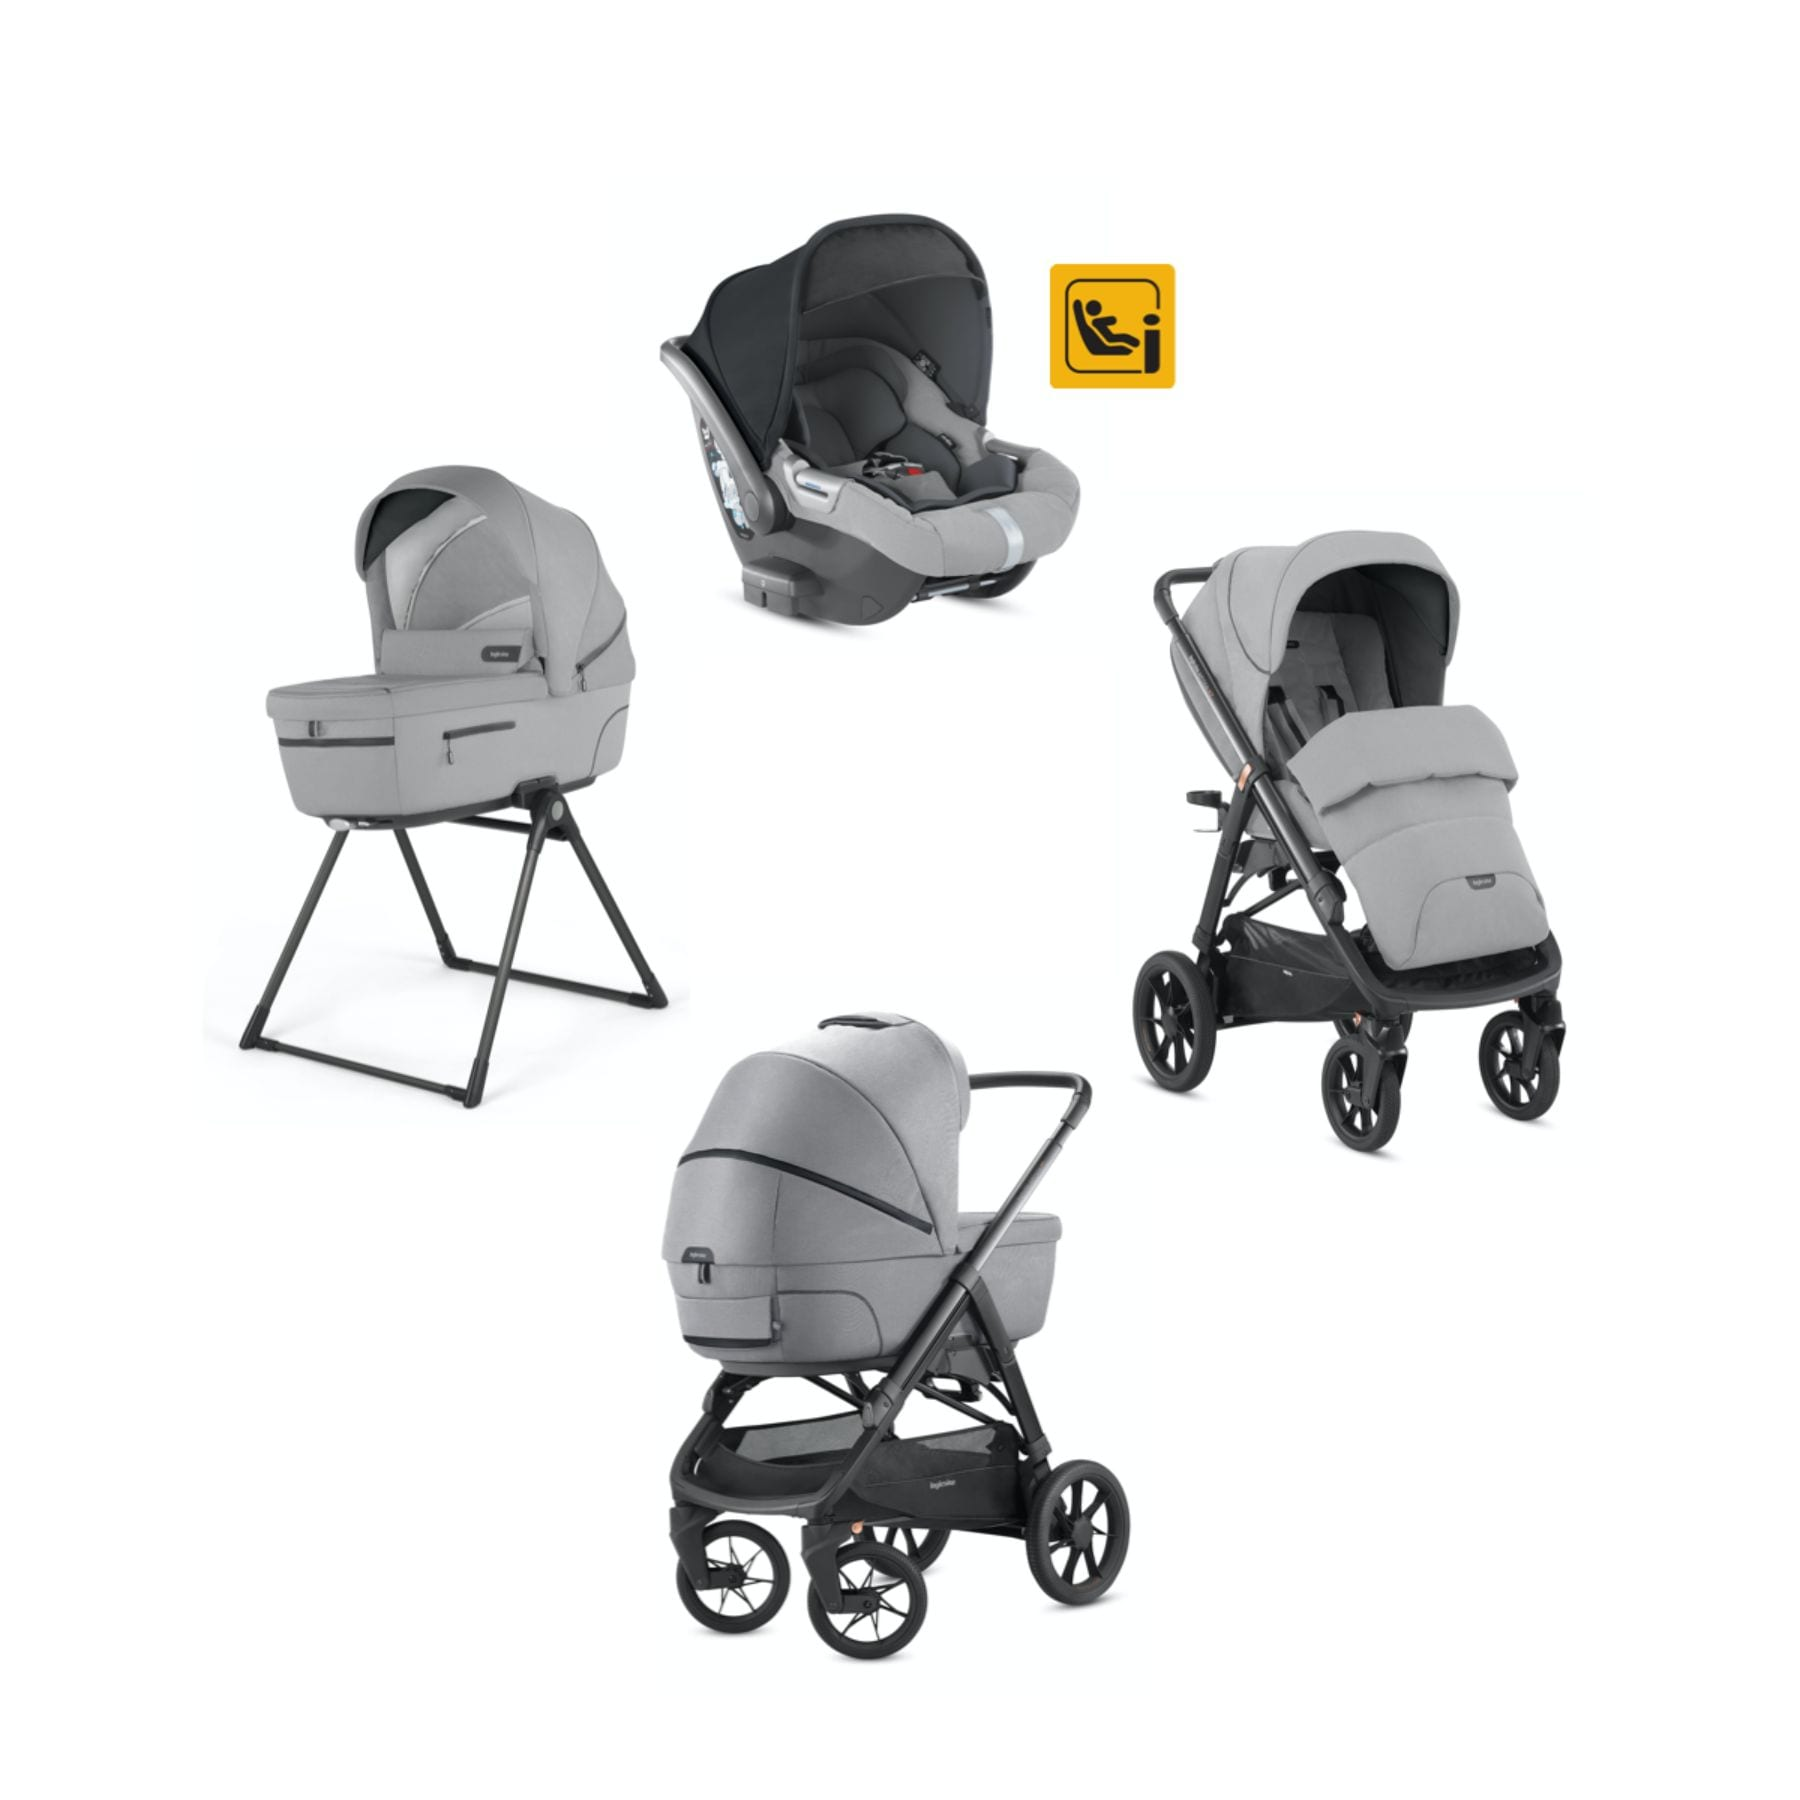 Inglesina Inglesina Aptica XT 5 Piece Travel System - Horizon Grey